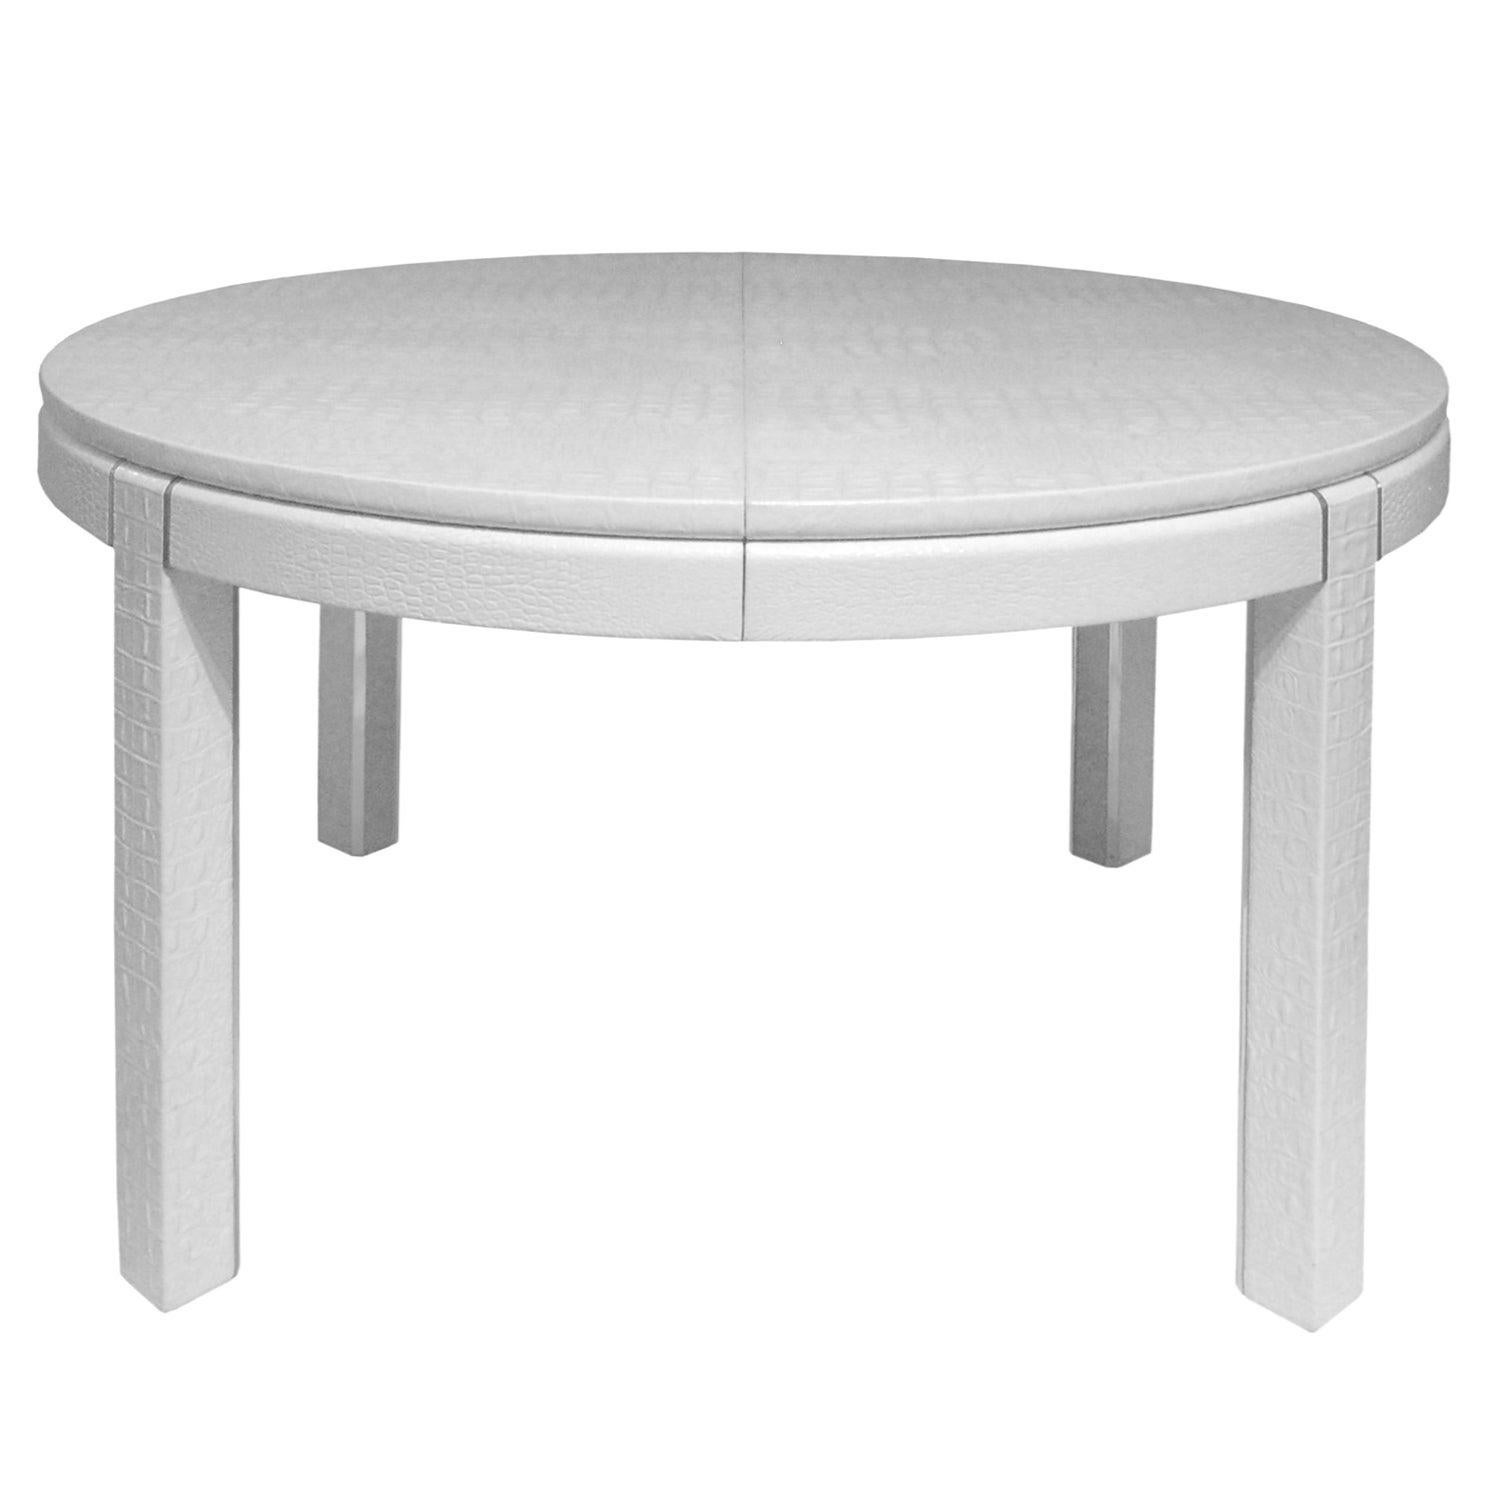 Karl Springer Extension Dining Table in Embossed Crocodile Leather, 1980s